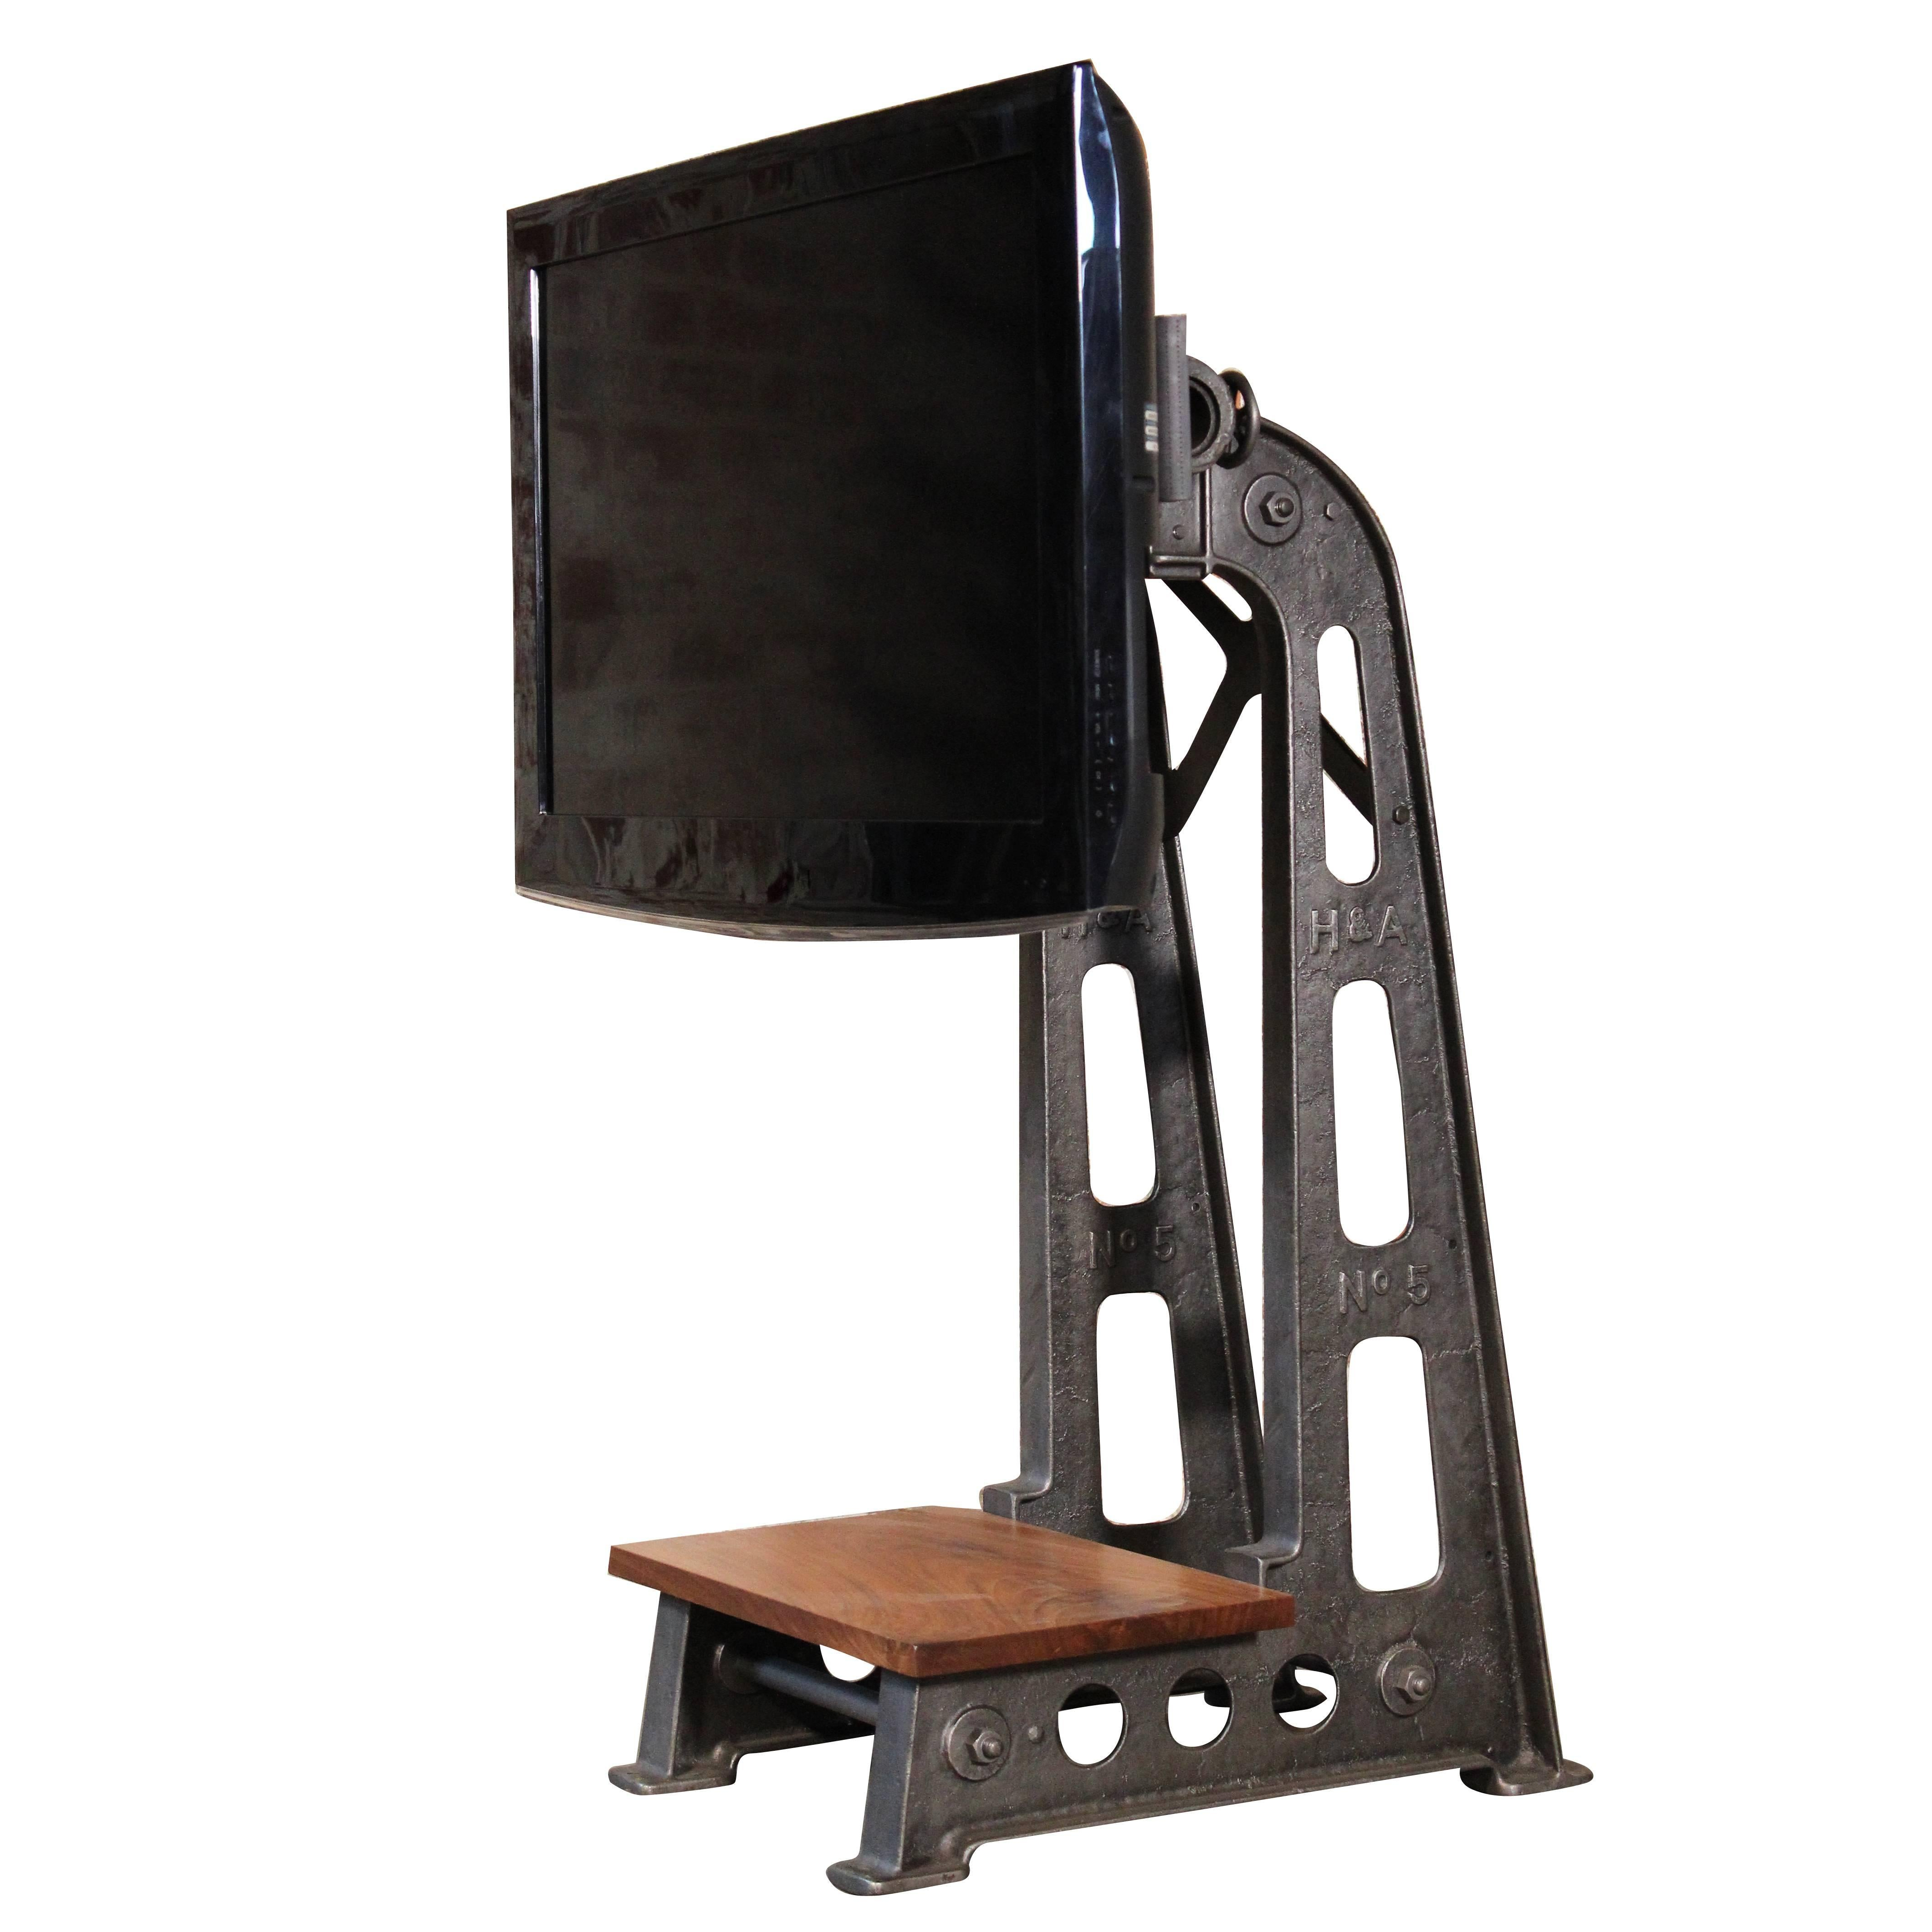 Flat Screen Tv Stands Flat Screen Tv Stand Vintage Industrial Cast Iron Media Screen Display Table